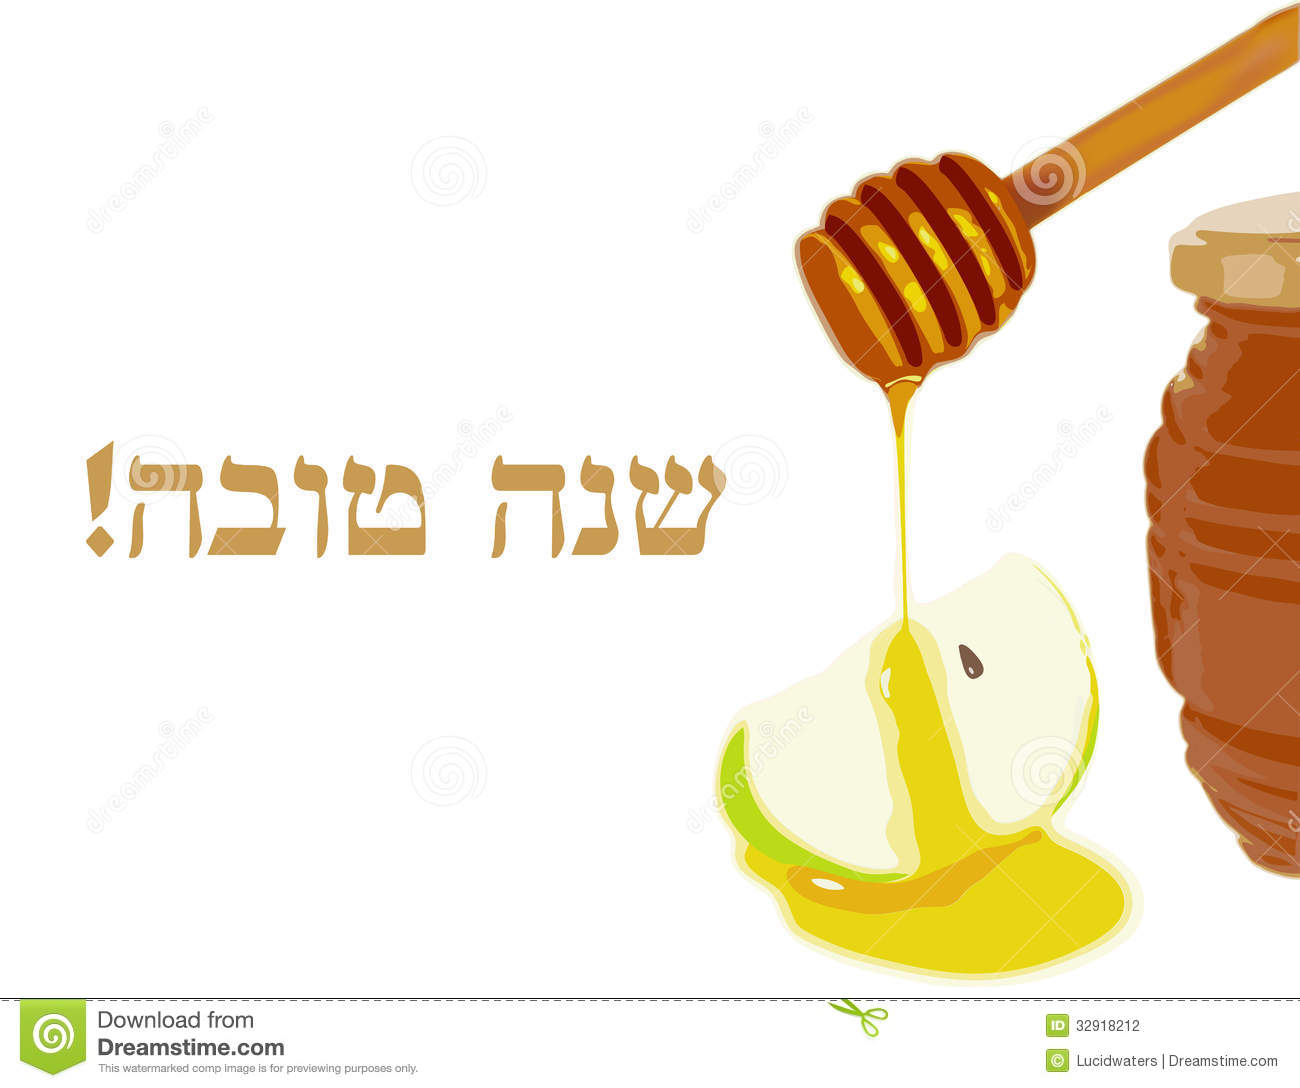 50 best rosh hashanah images on askideas rosh hashanah greetings hebrew text with apple and honey illustration kristyandbryce Choice Image